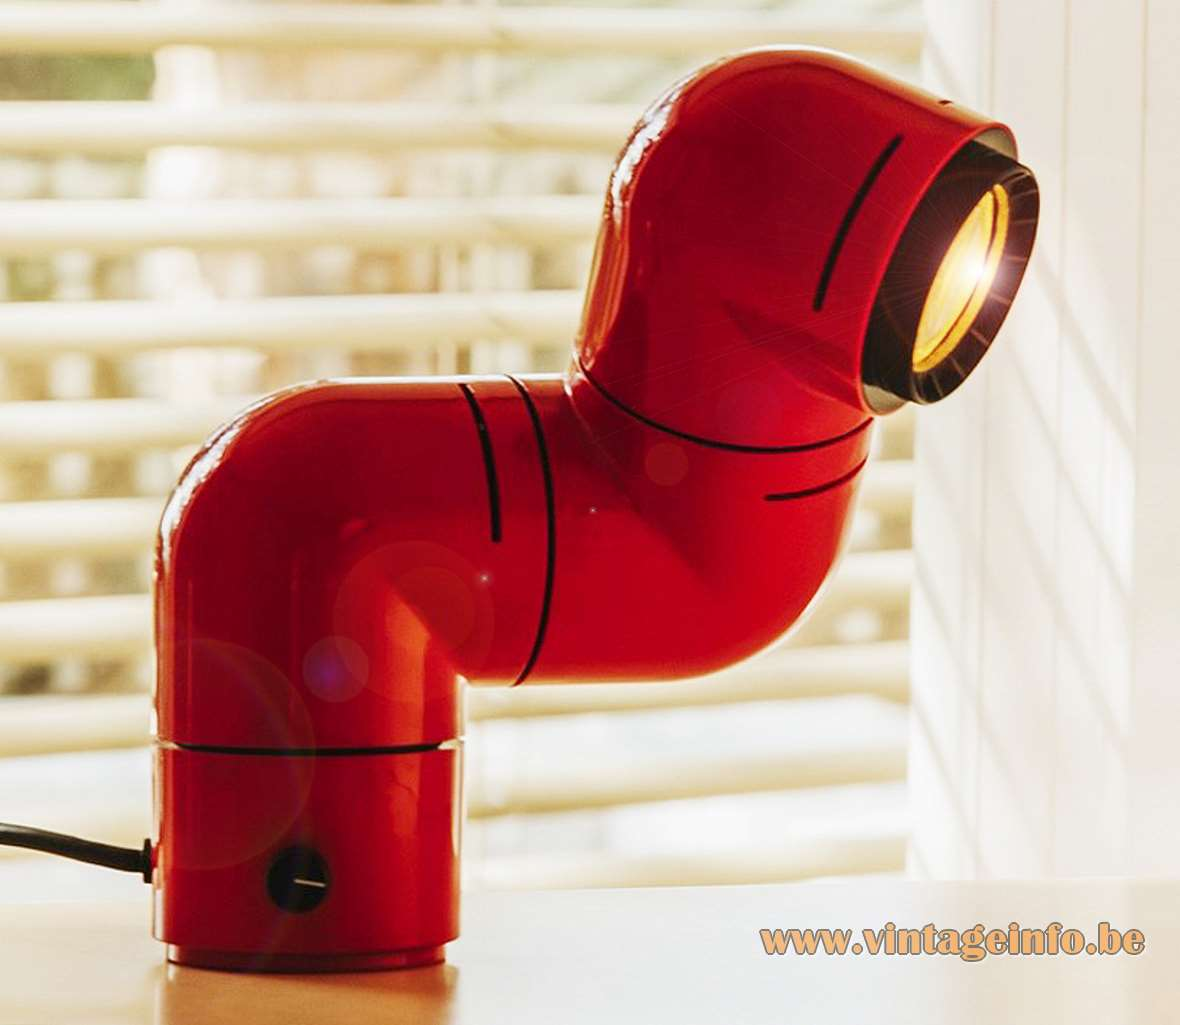 André Ricard Tatù table lamp armadillo ABS plastic Design 1972 Spain Metalarte 1970s Santa & Cole today MCM